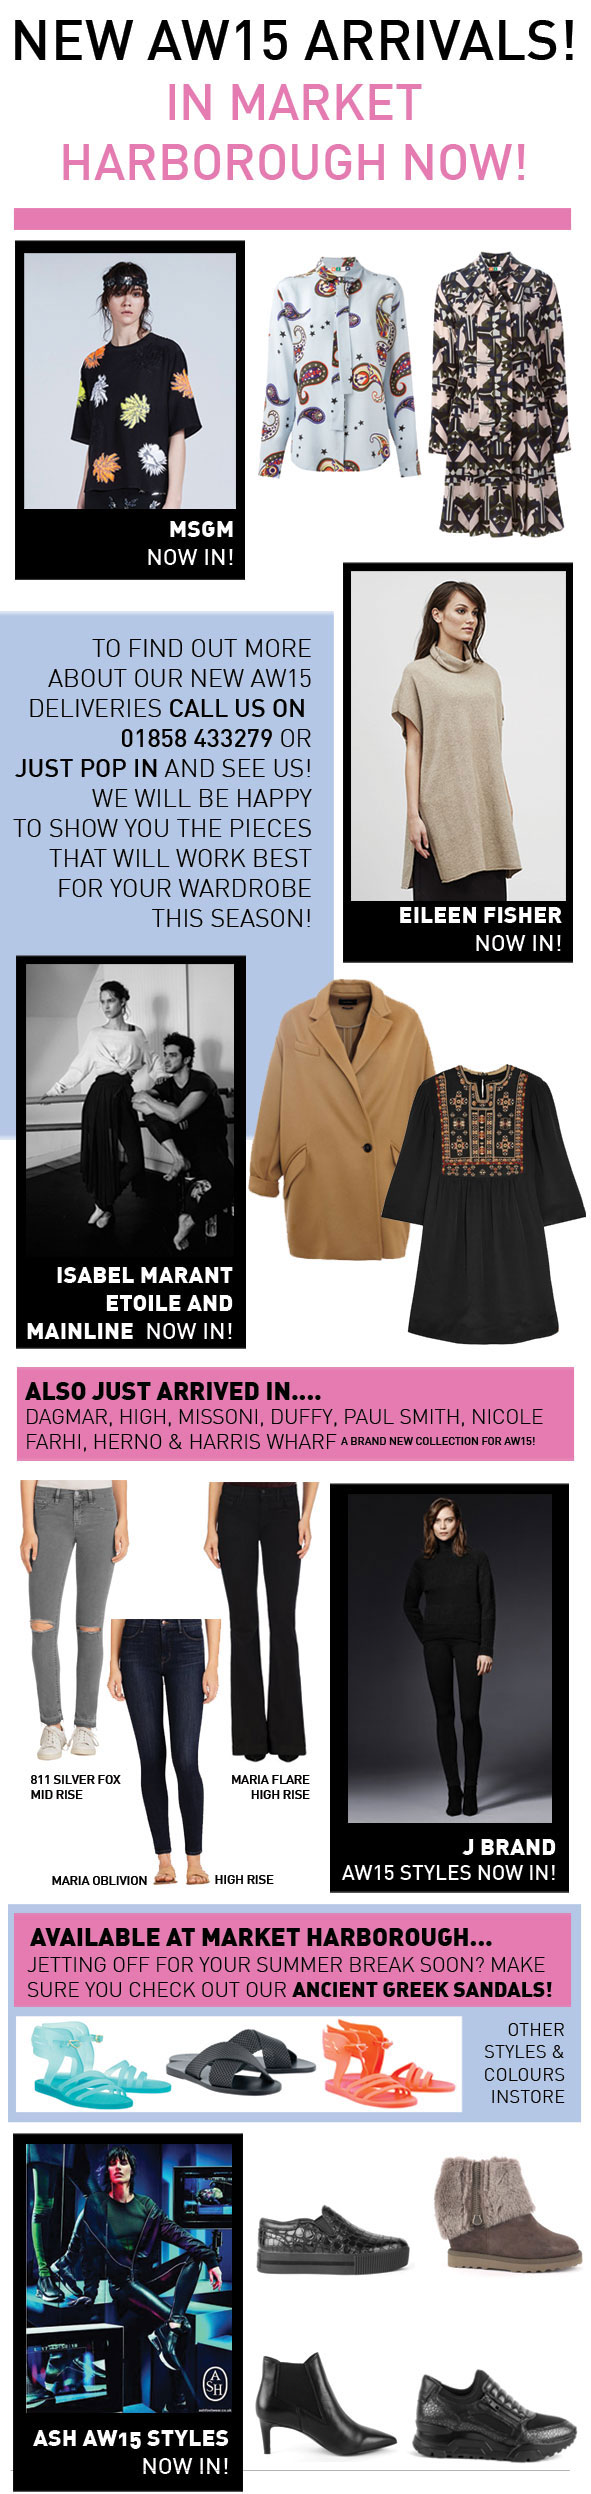 AW15-NEW-DELIVERIES-IN-MH-FINAL_02_01